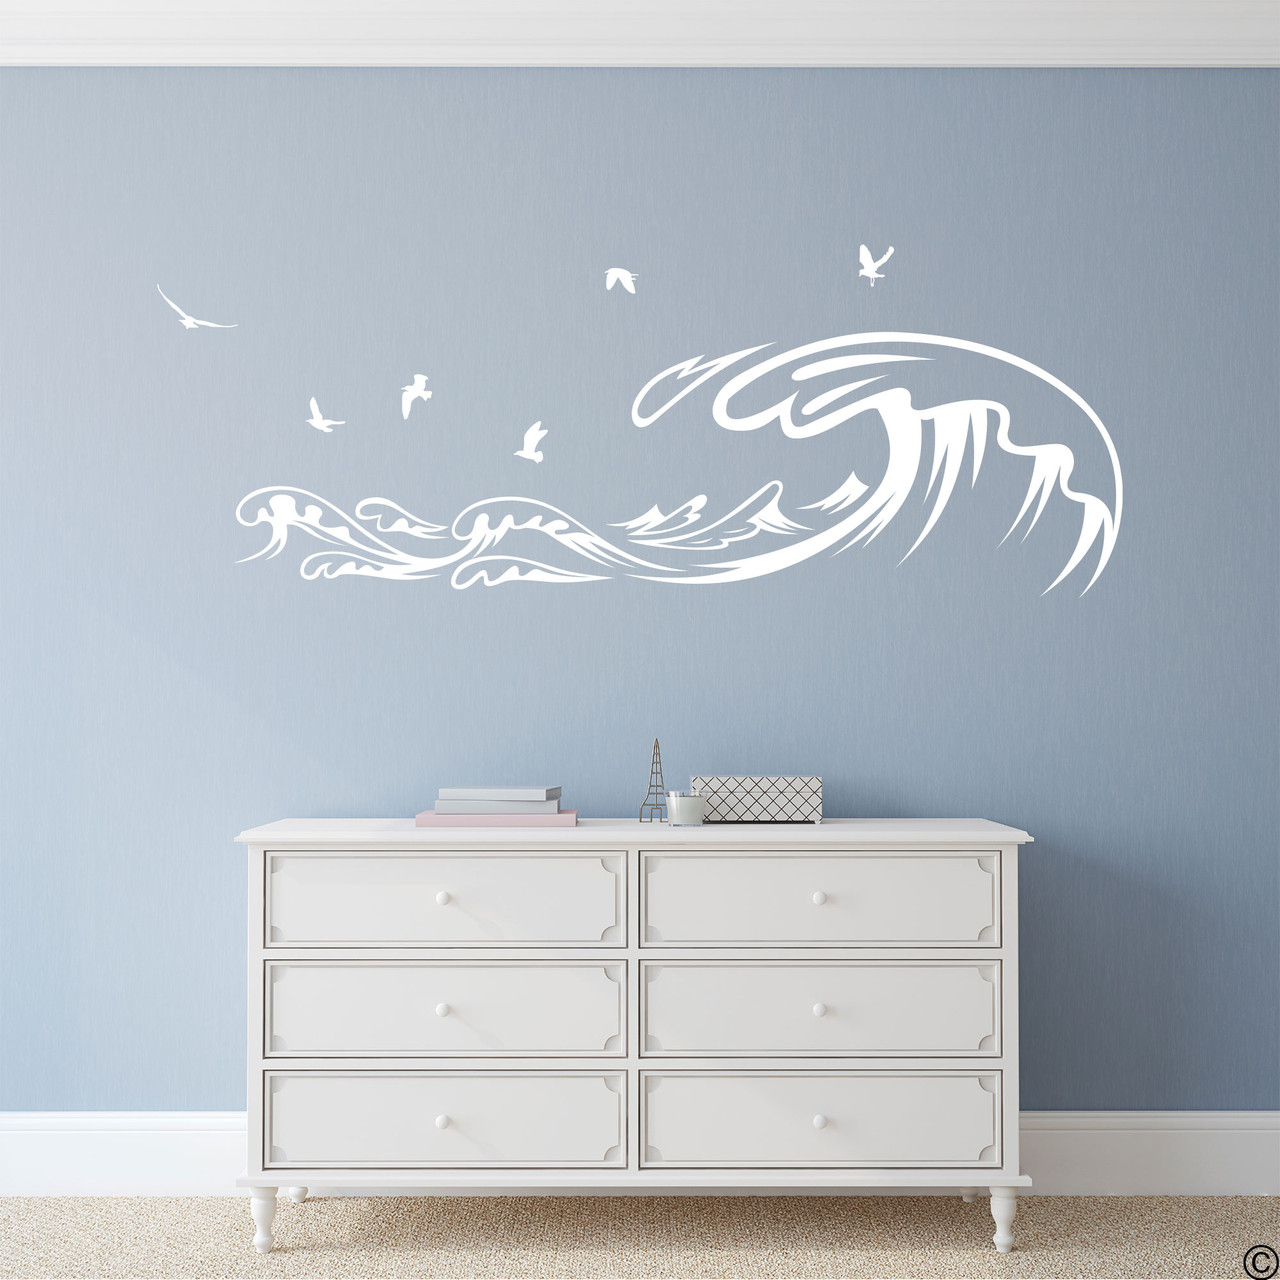 The Waves and Seagulls wall decal shown here in the white vinyl color.